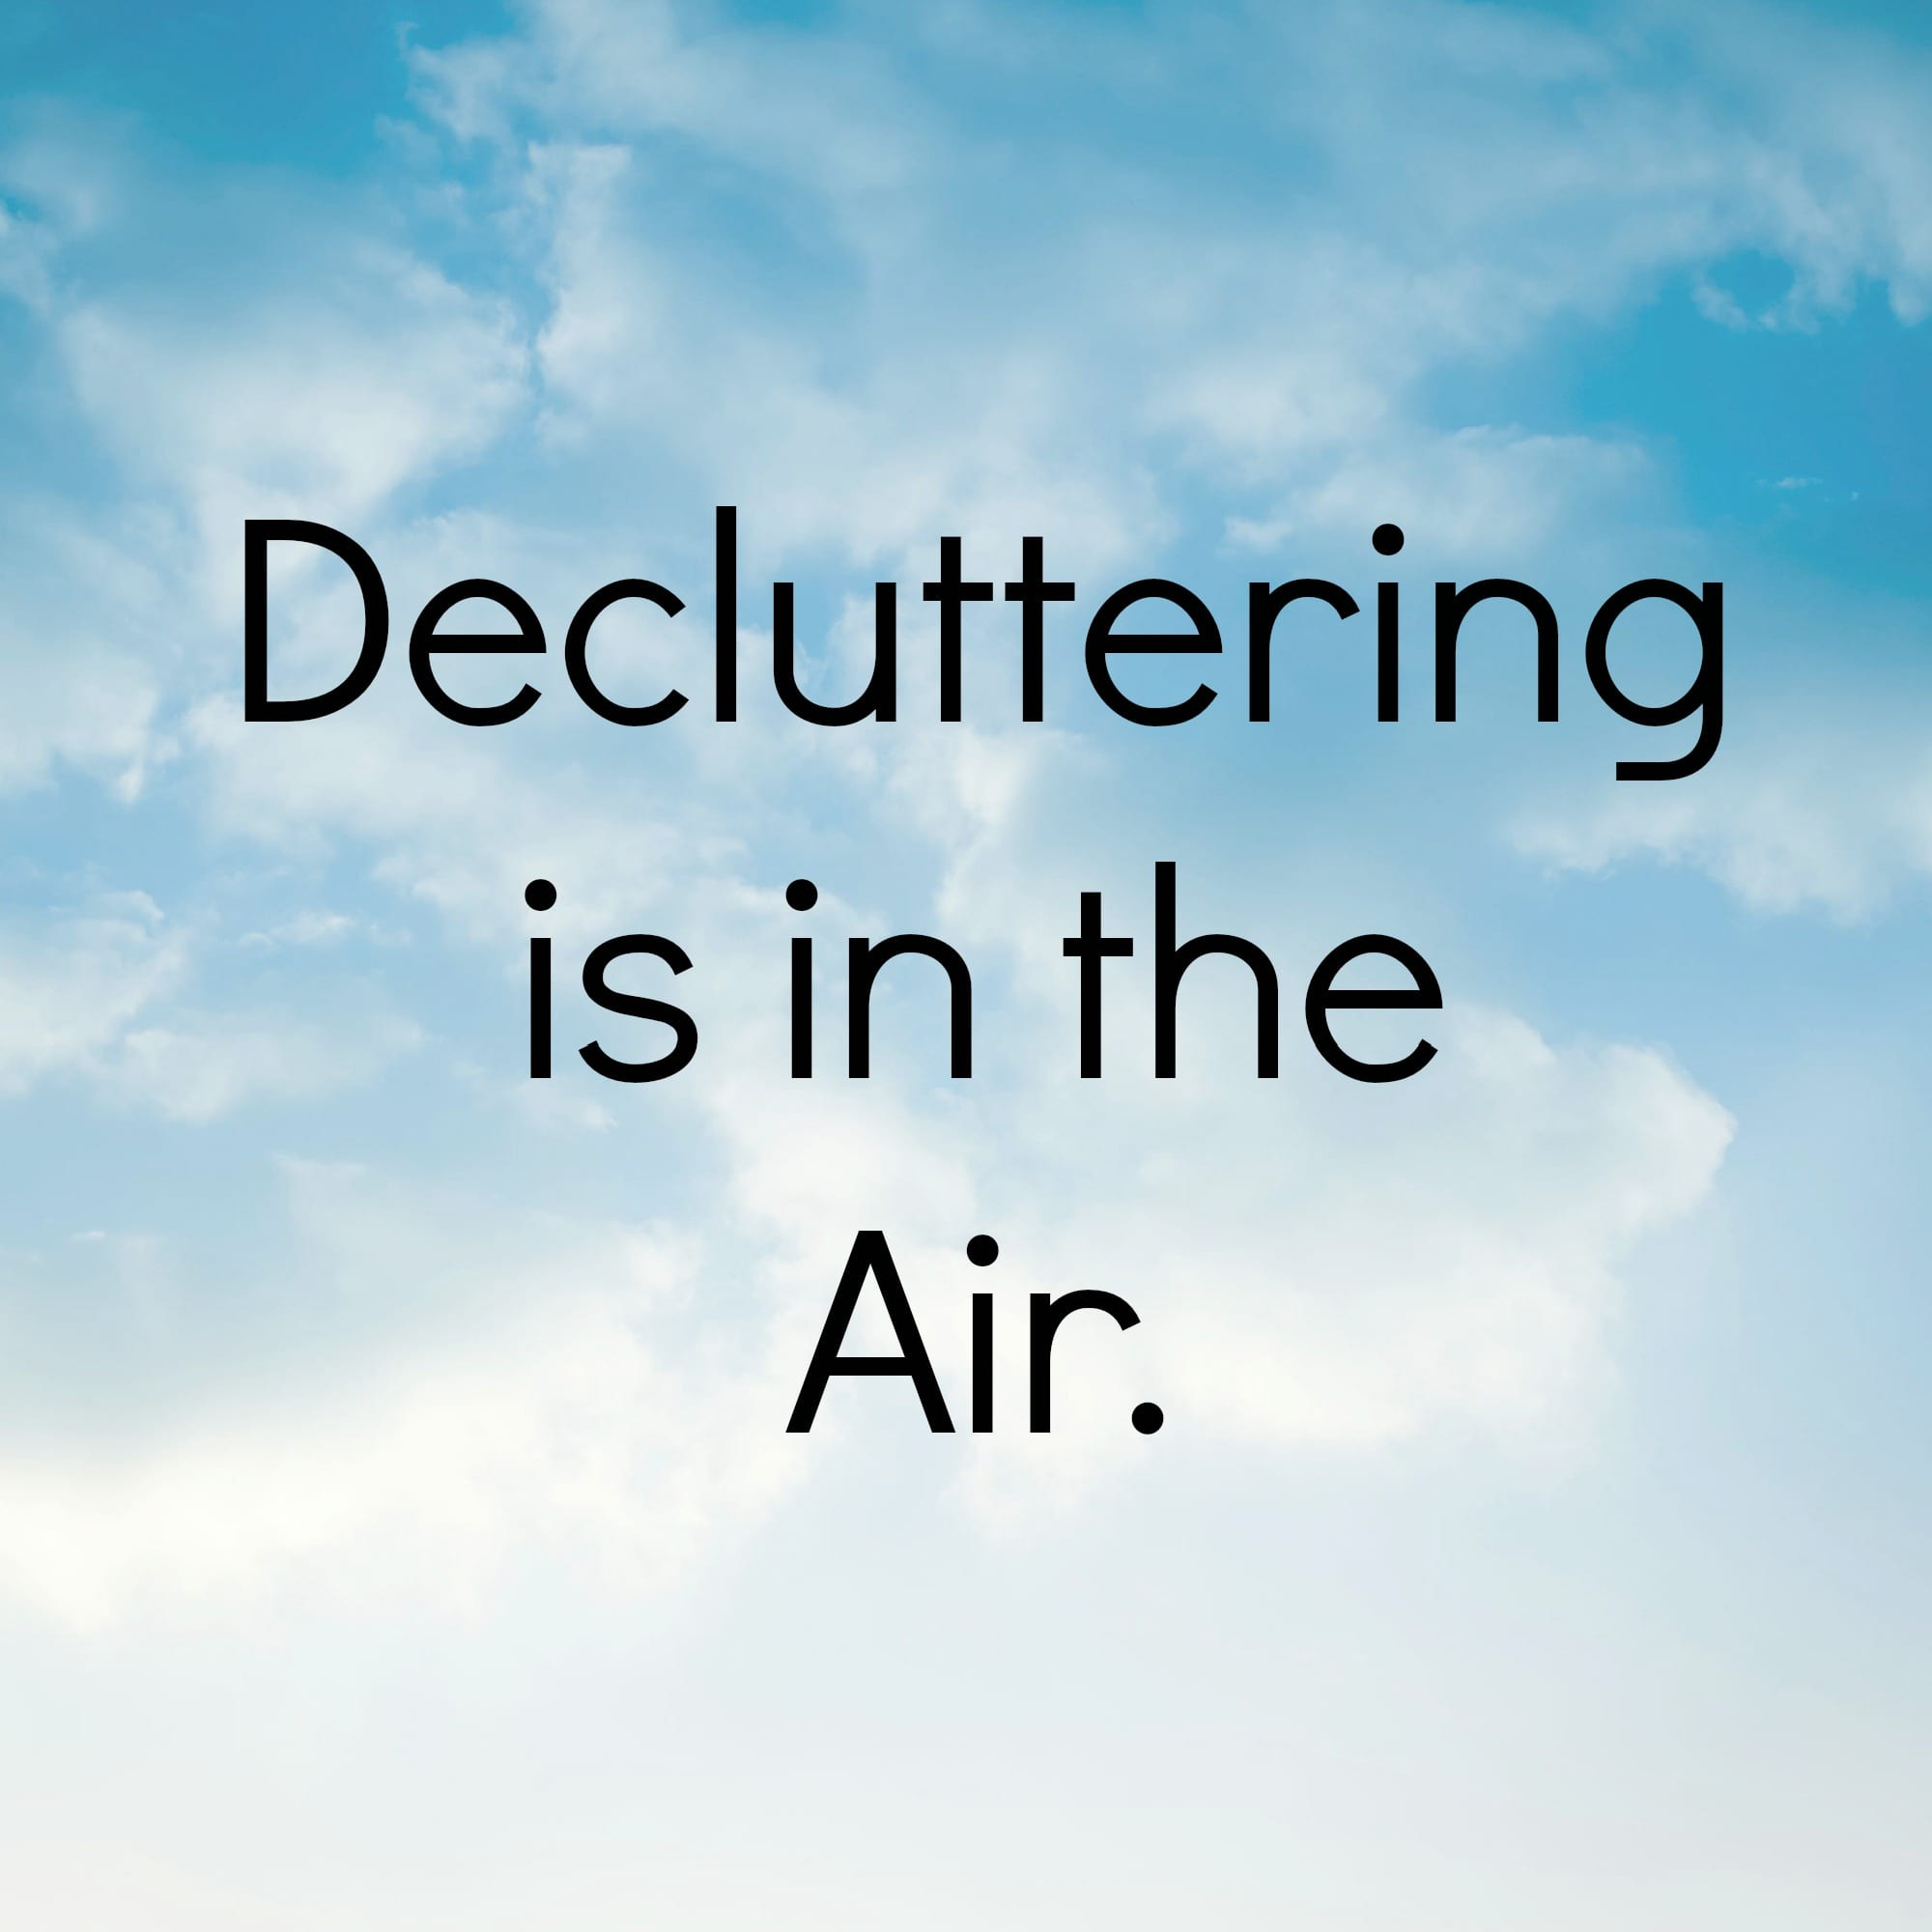 decluttering is in the air